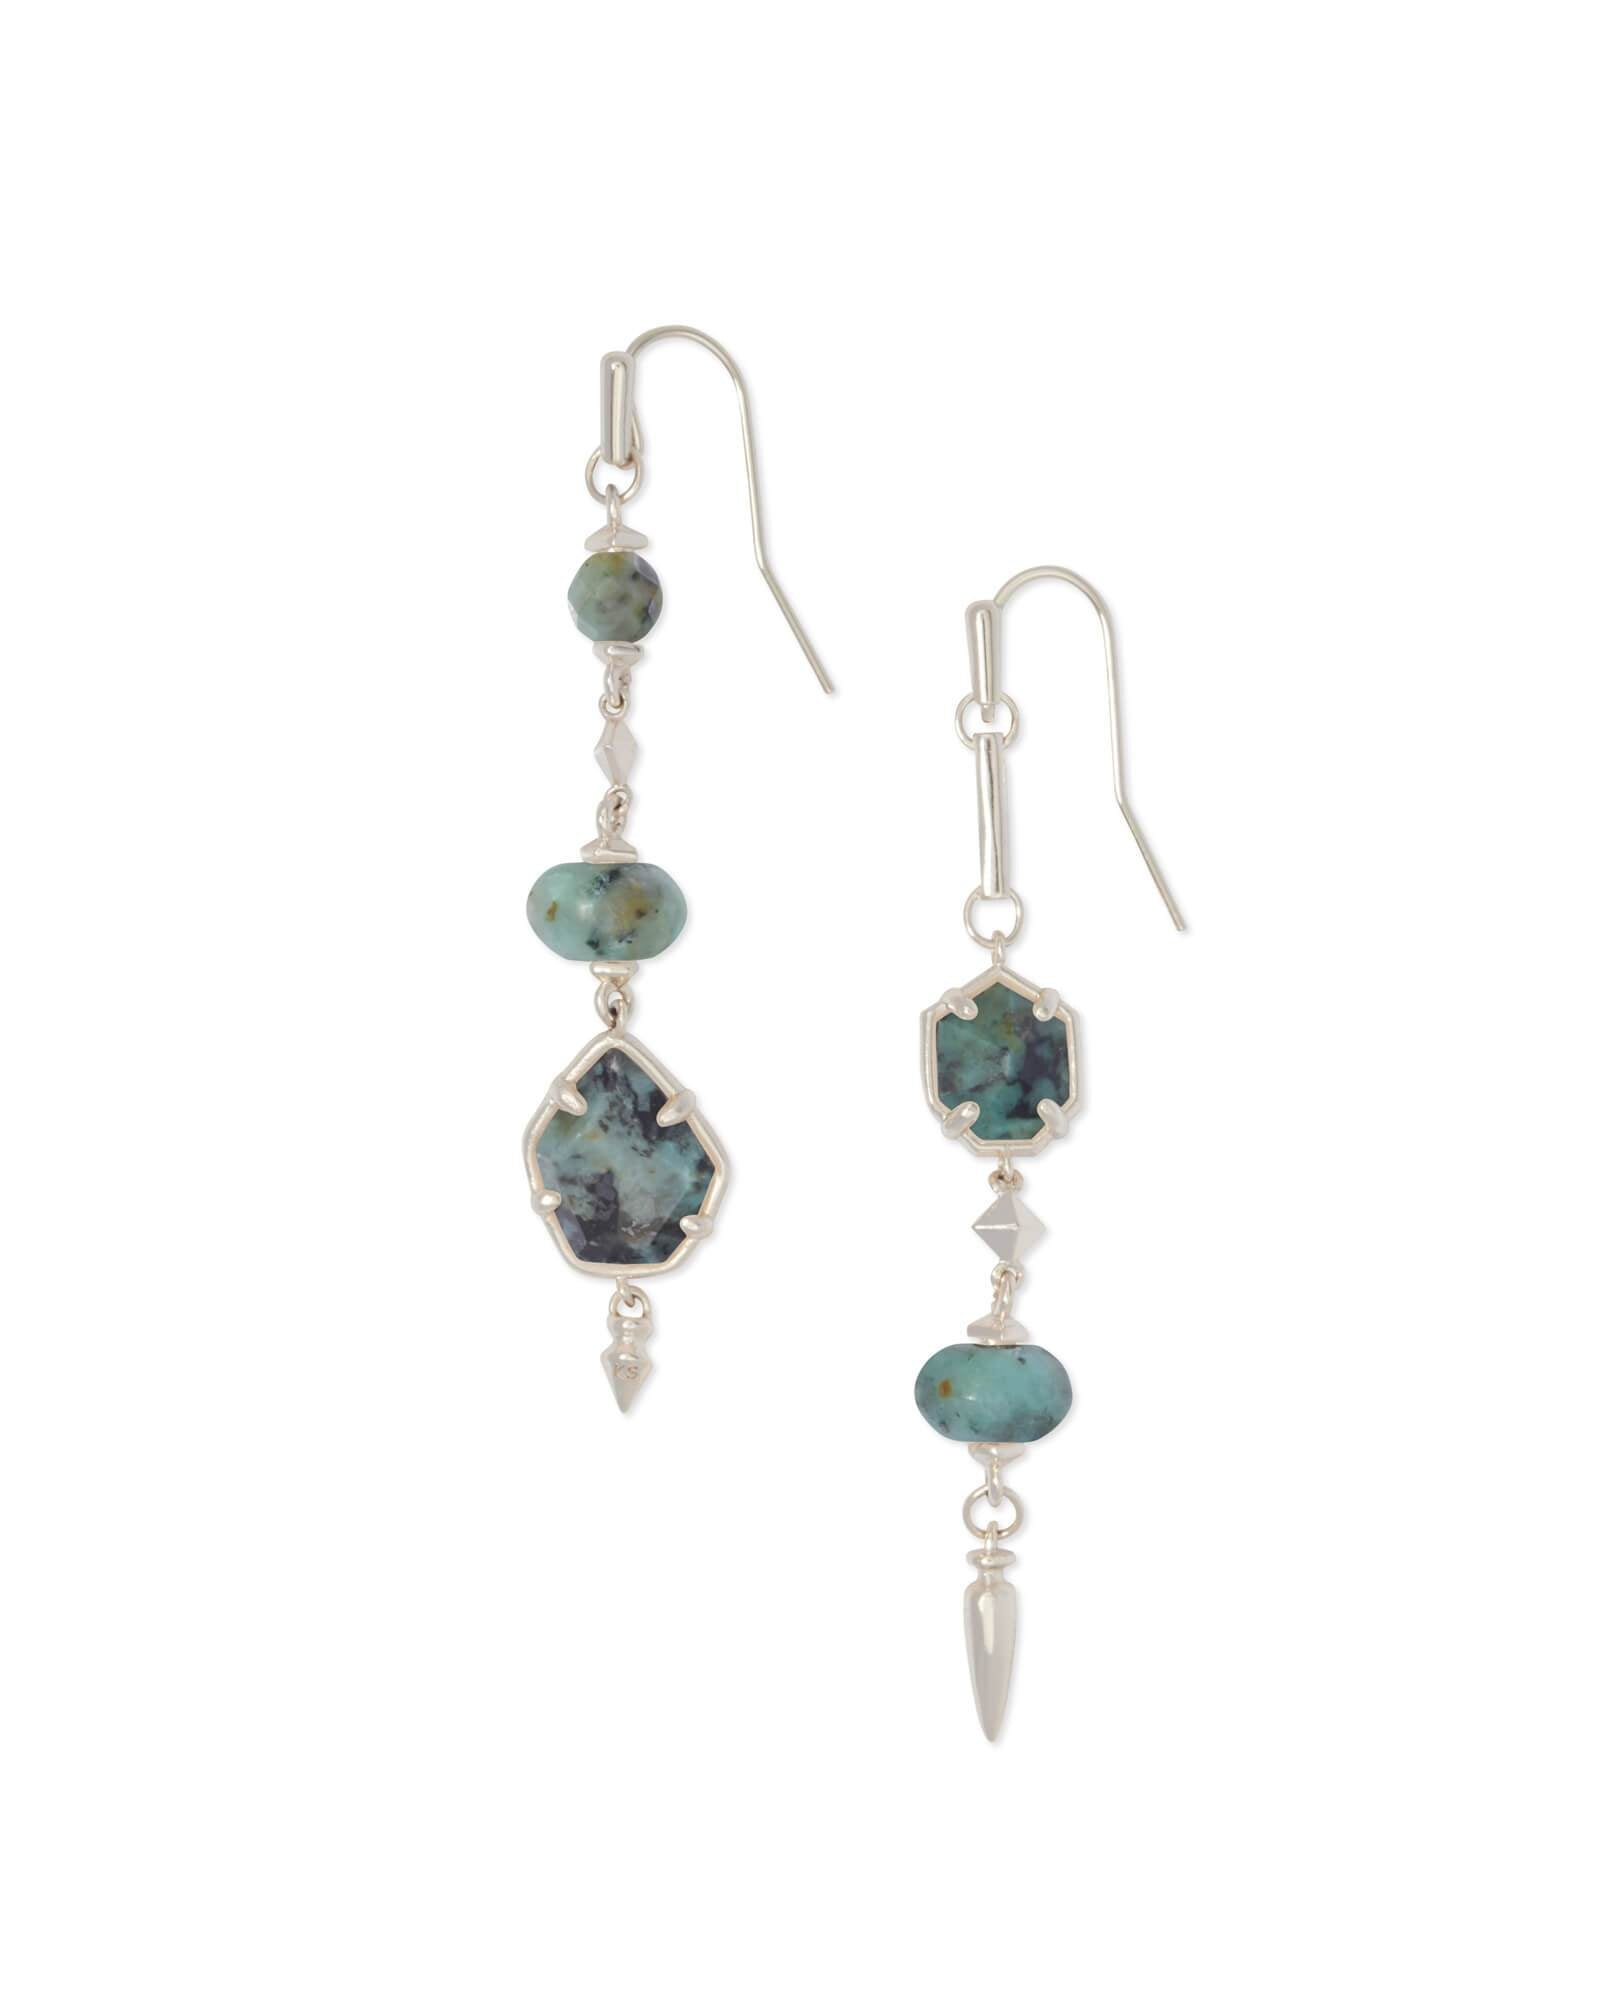 RHYS SILVER AFRICAN TURQUOISE EARRINGS